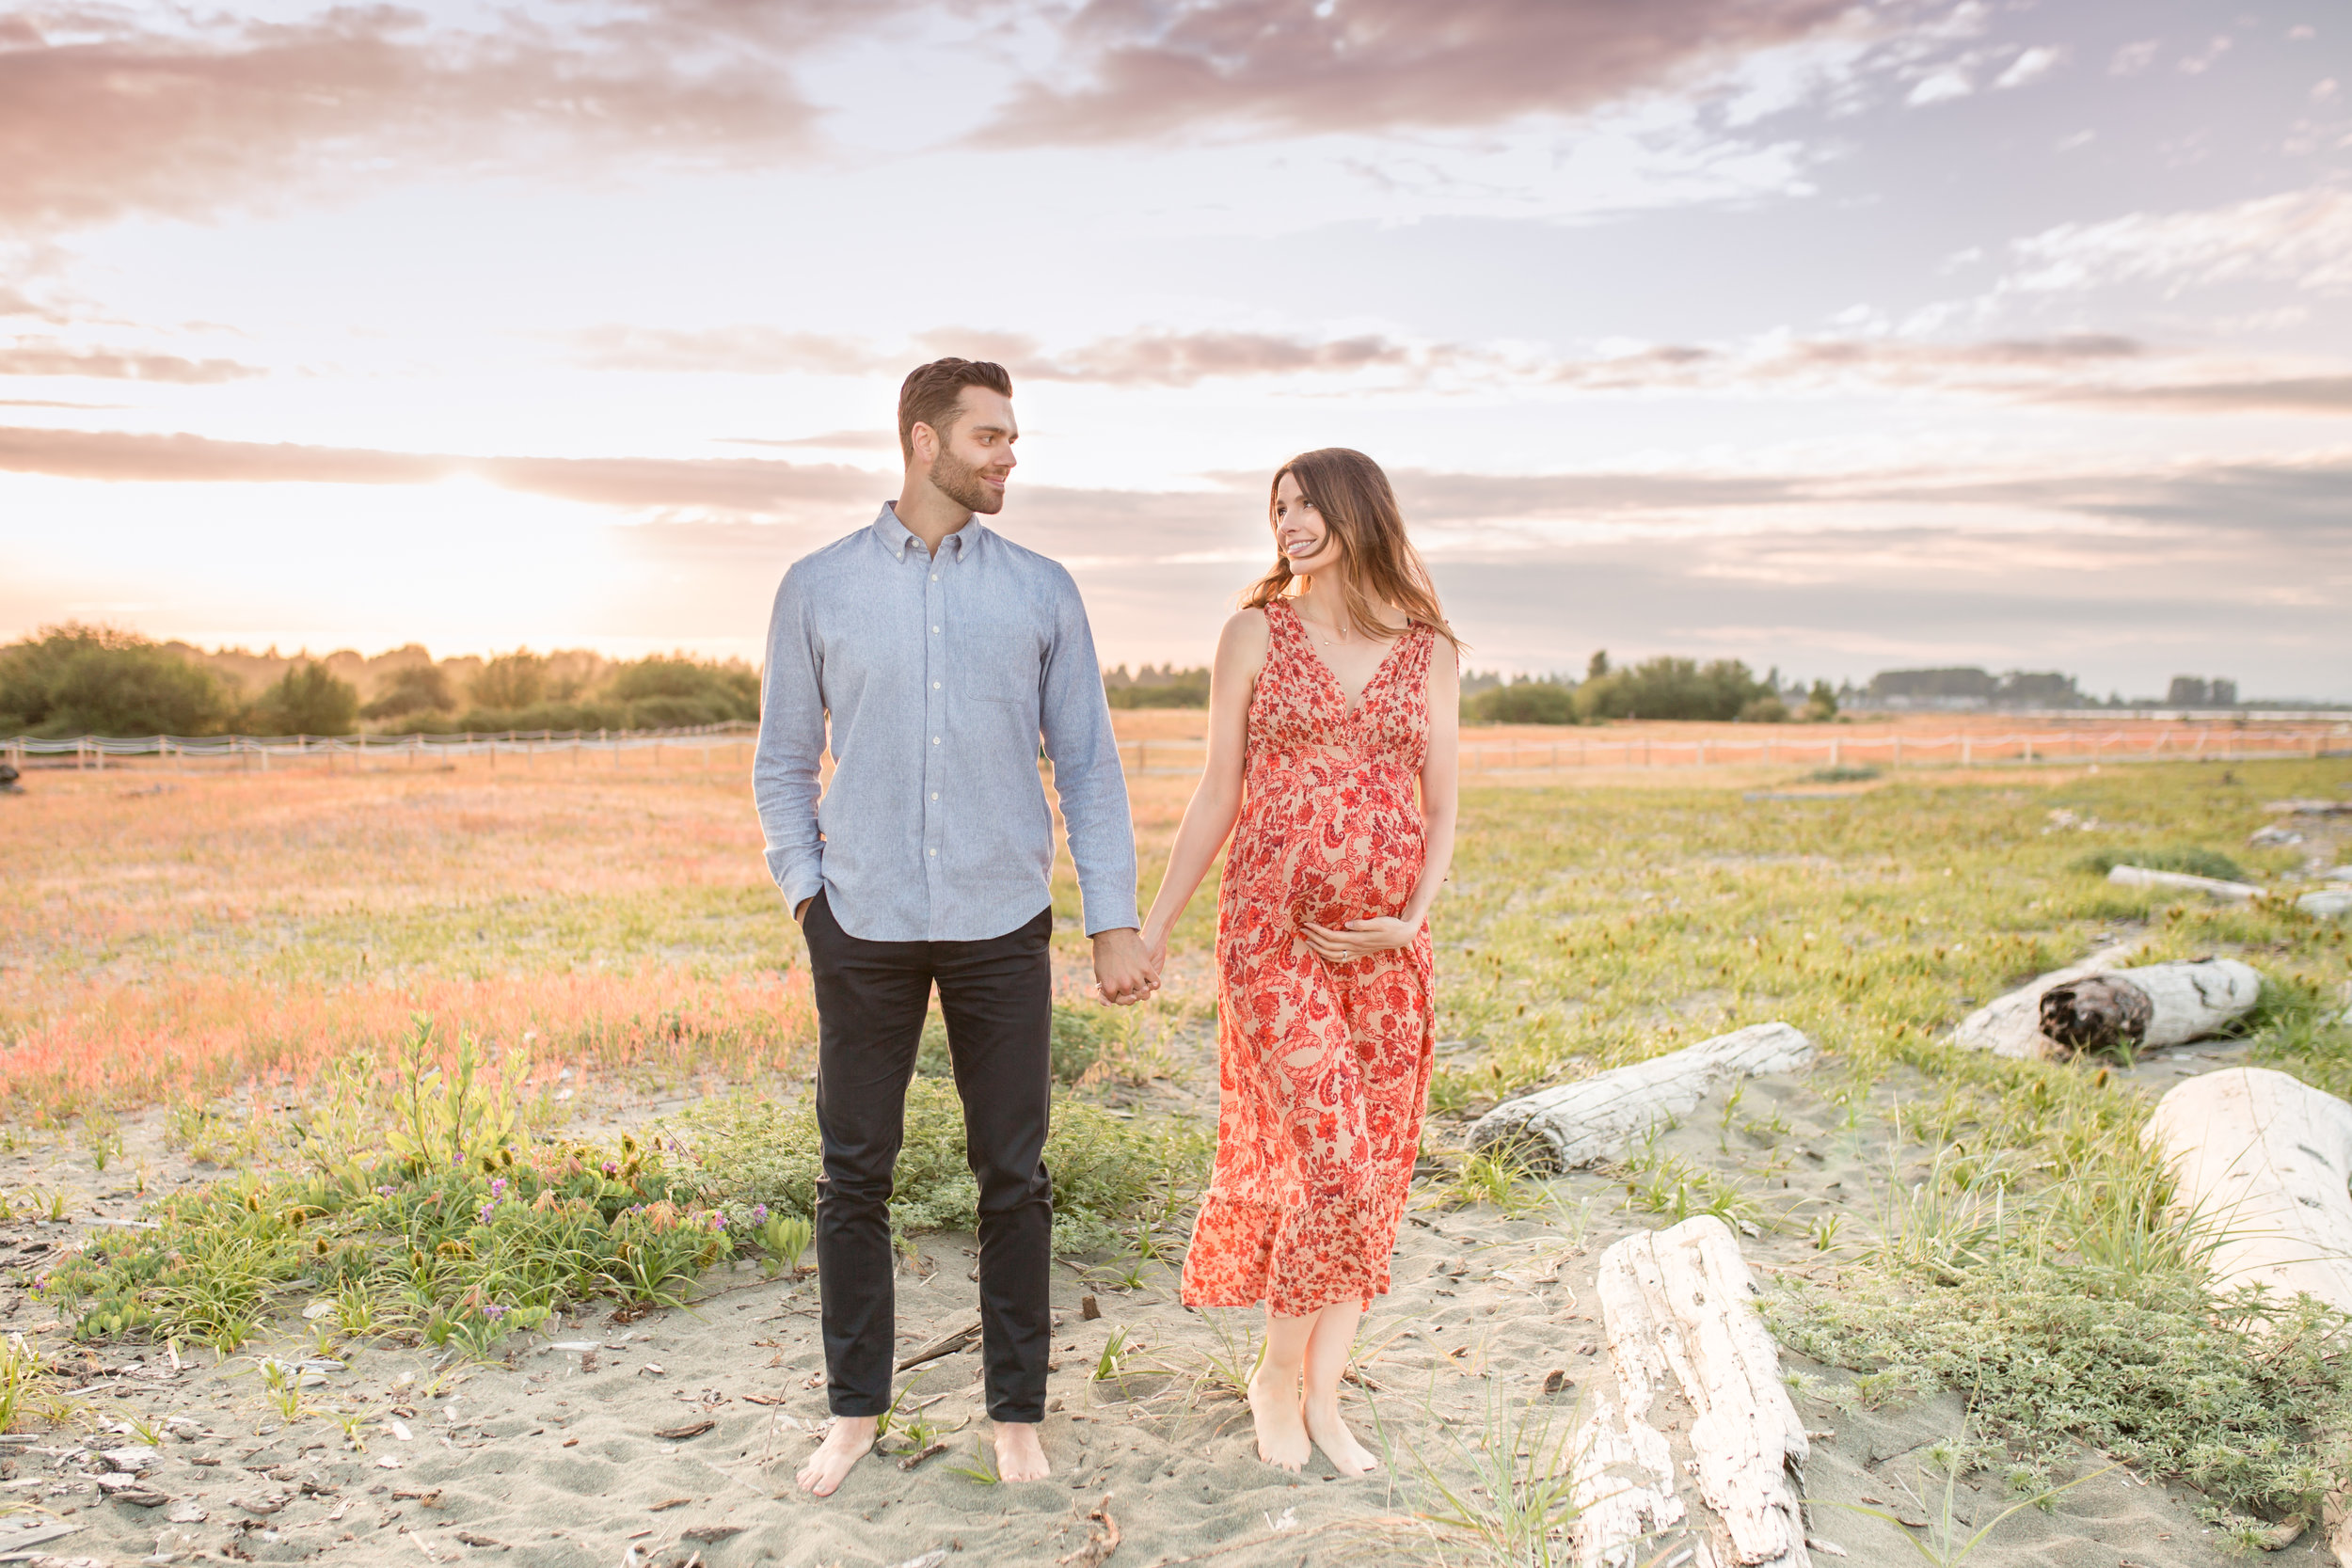 Centennial Beach Maternity Photos -27.jpg